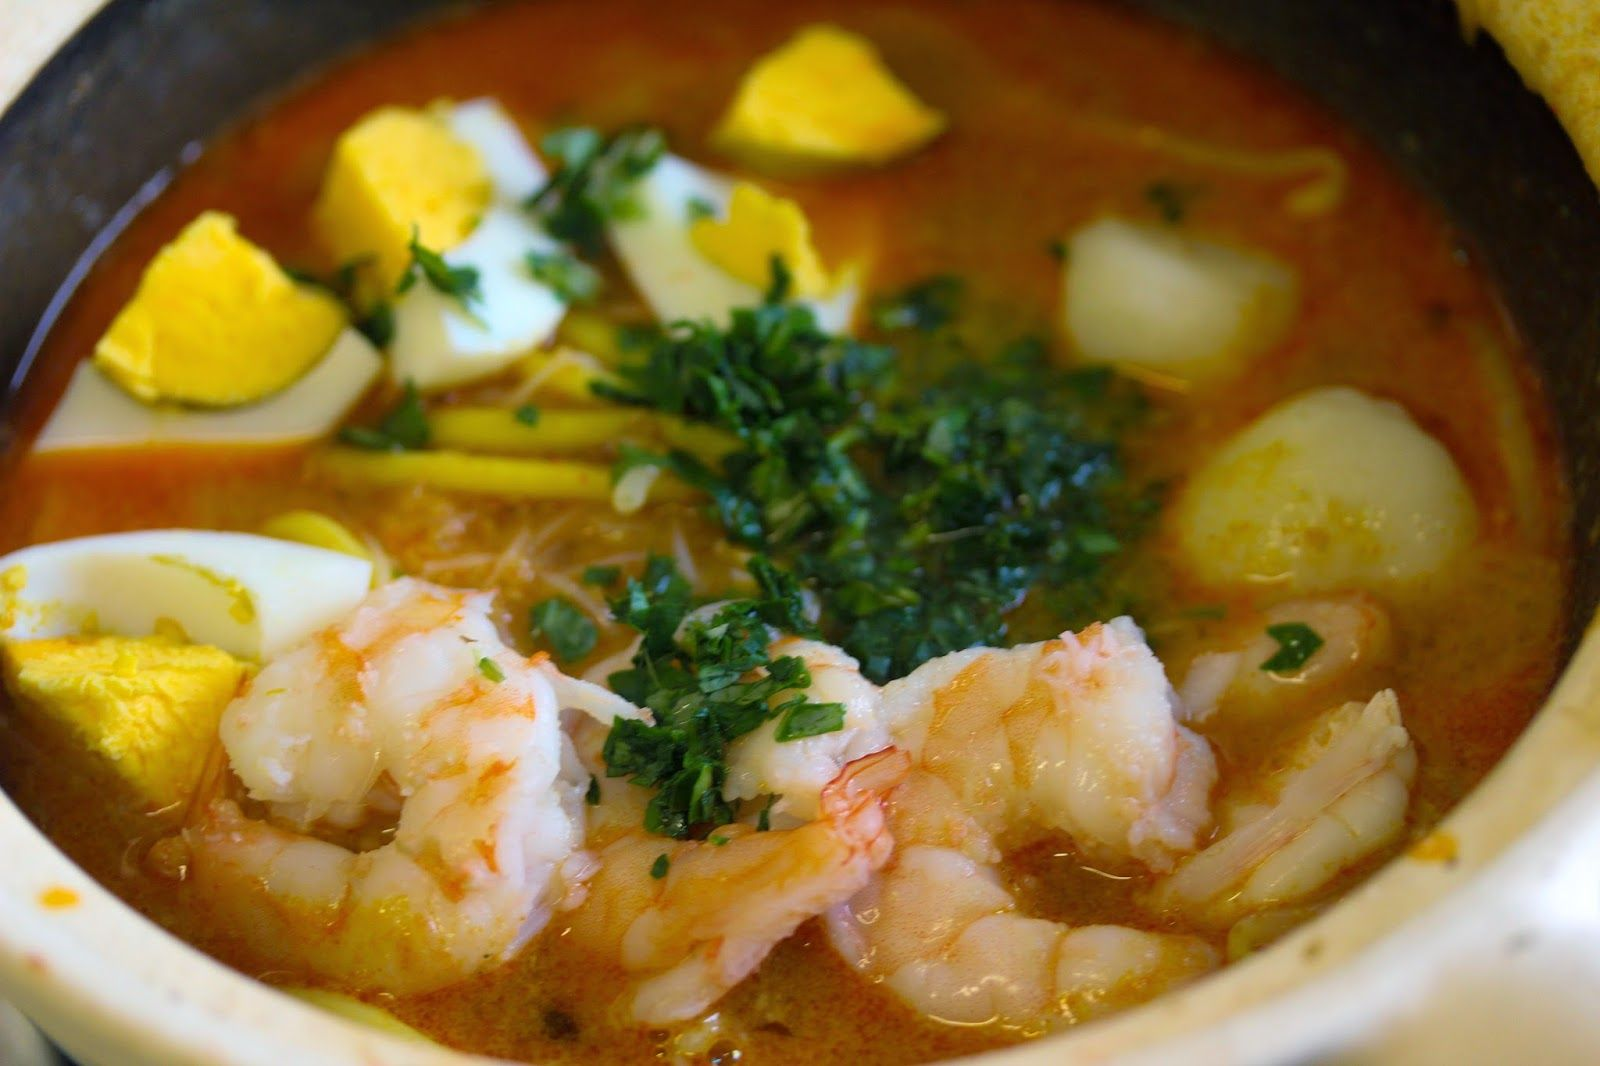 The Food Canon - Inspiring Home Cooks: Cooking Laksa in Toronto